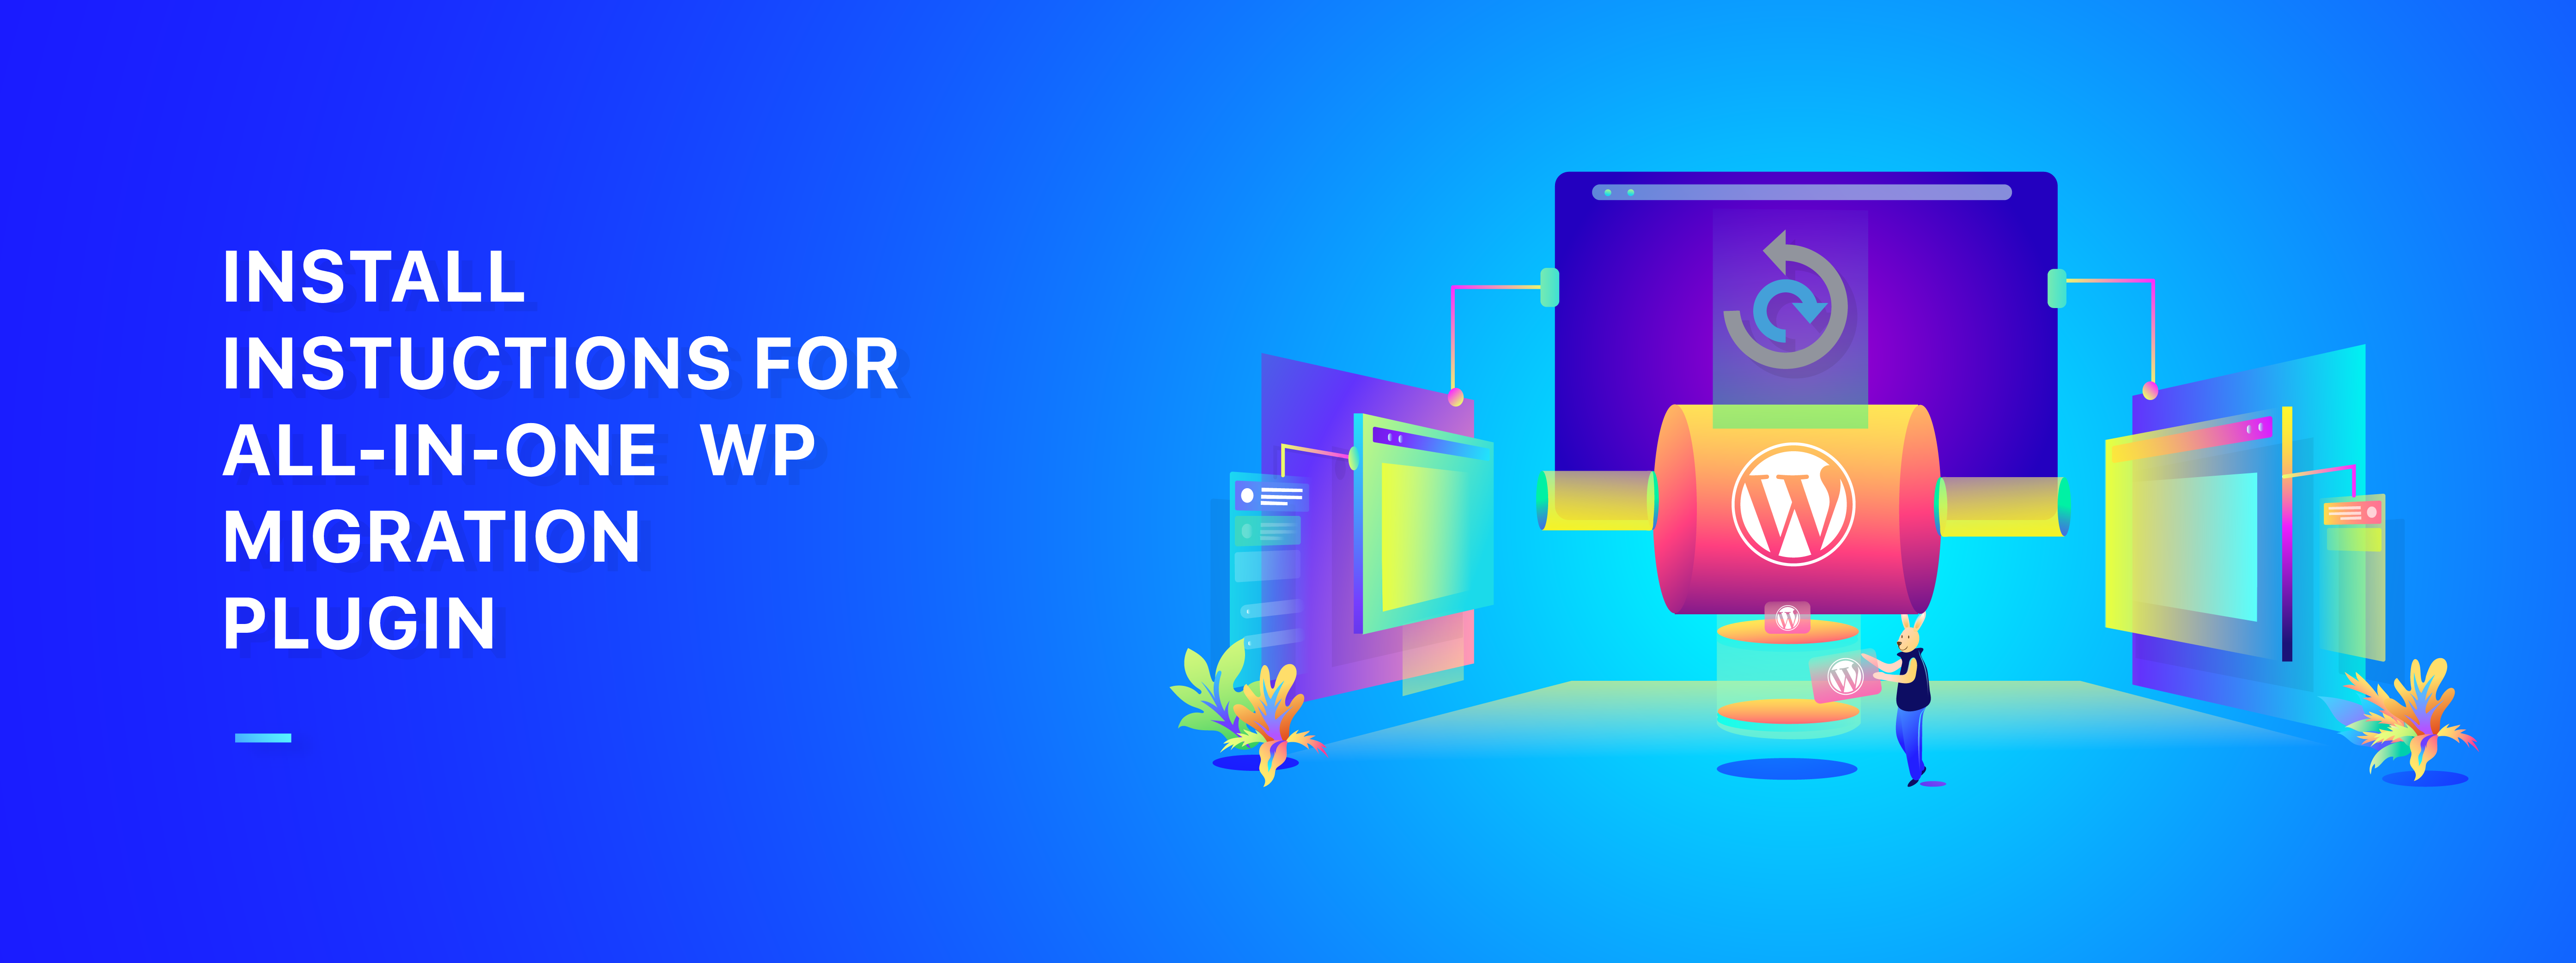 Install Instructions for All-in-One WP Migration Plugin